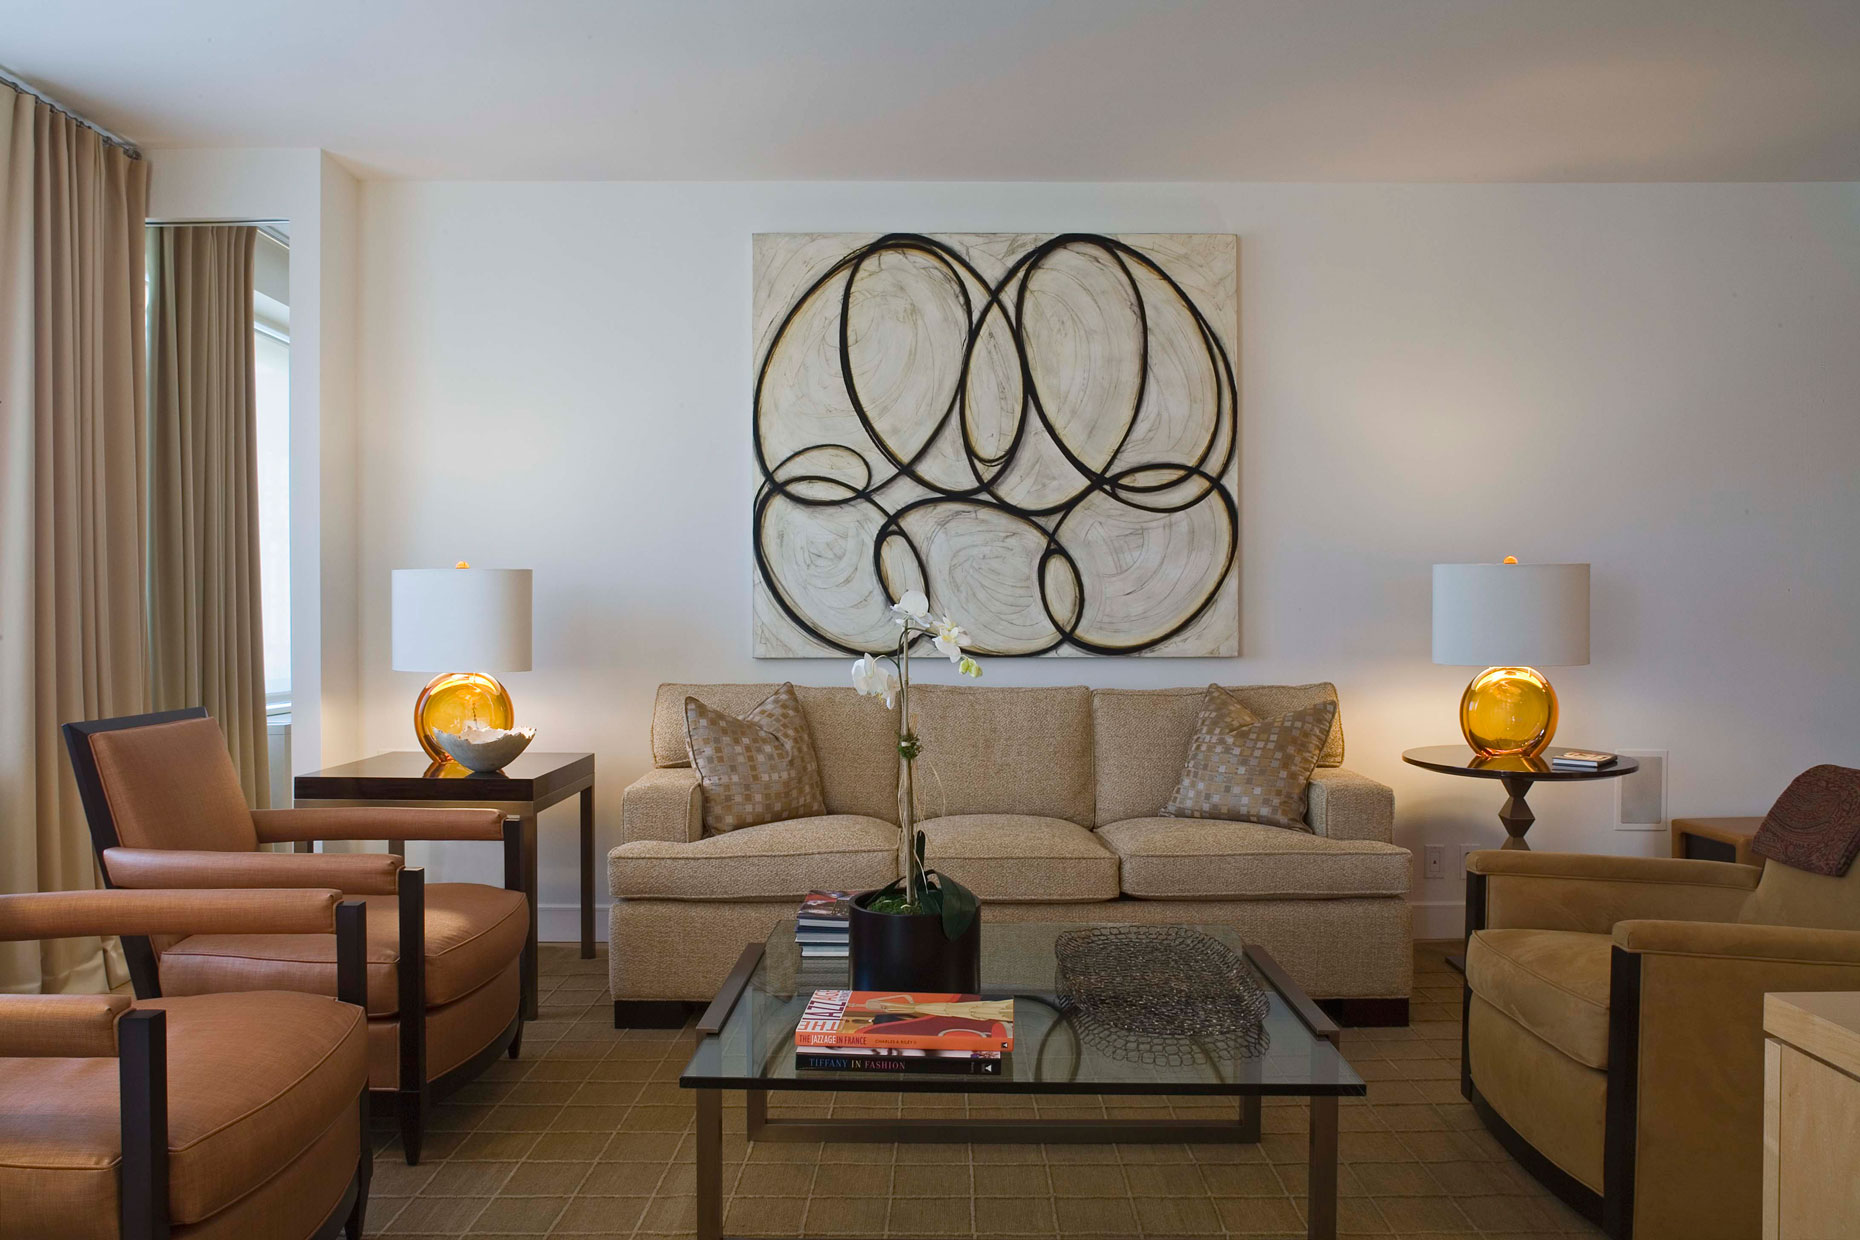 New-York-Pied-a-terre-2.jpg